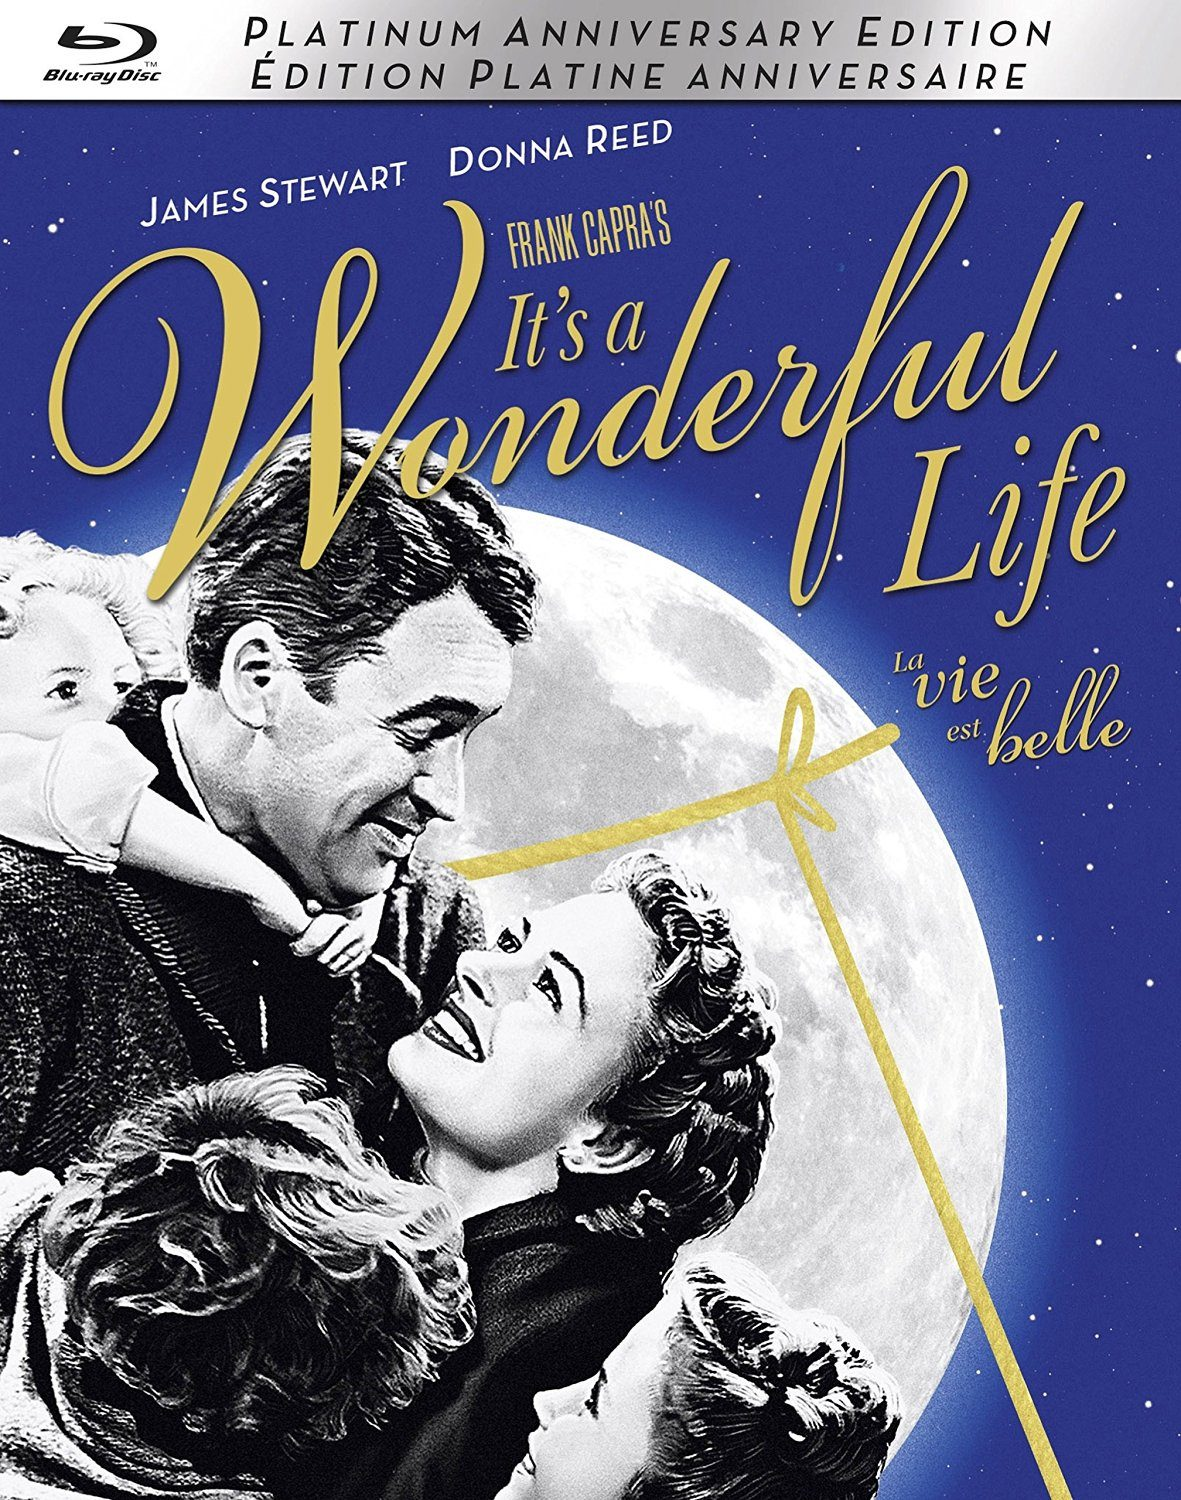 It's a Wonderful Life is regarded as one of the best Christmas movies